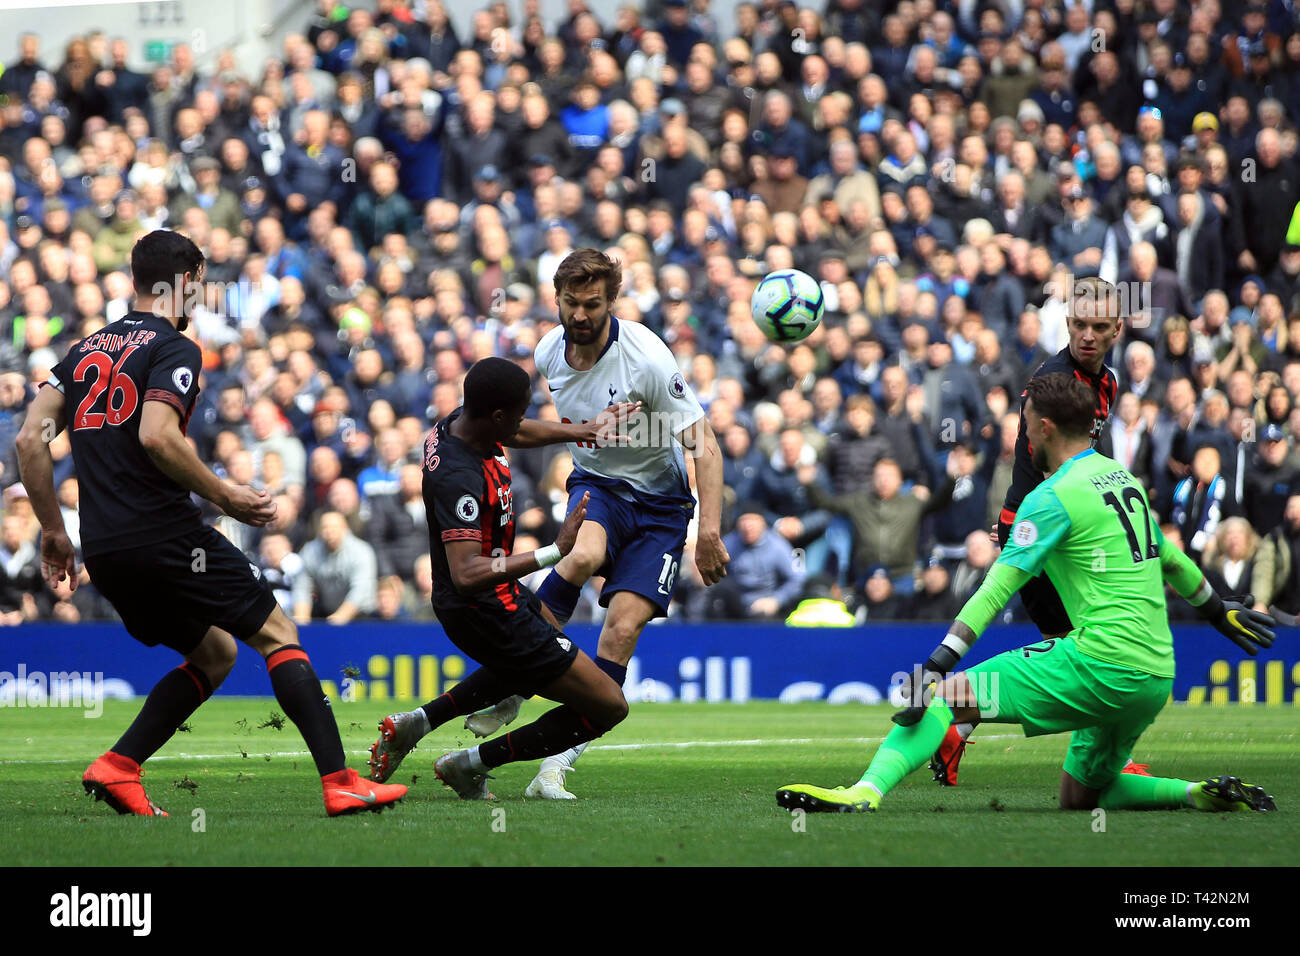 3bd76f5c1 Fernando Llorente of Tottenham Hotspur (1R) takes a shot at goal which is  blocked by Terence Kongolo of Huddersfield Town (2L). Premier league ...